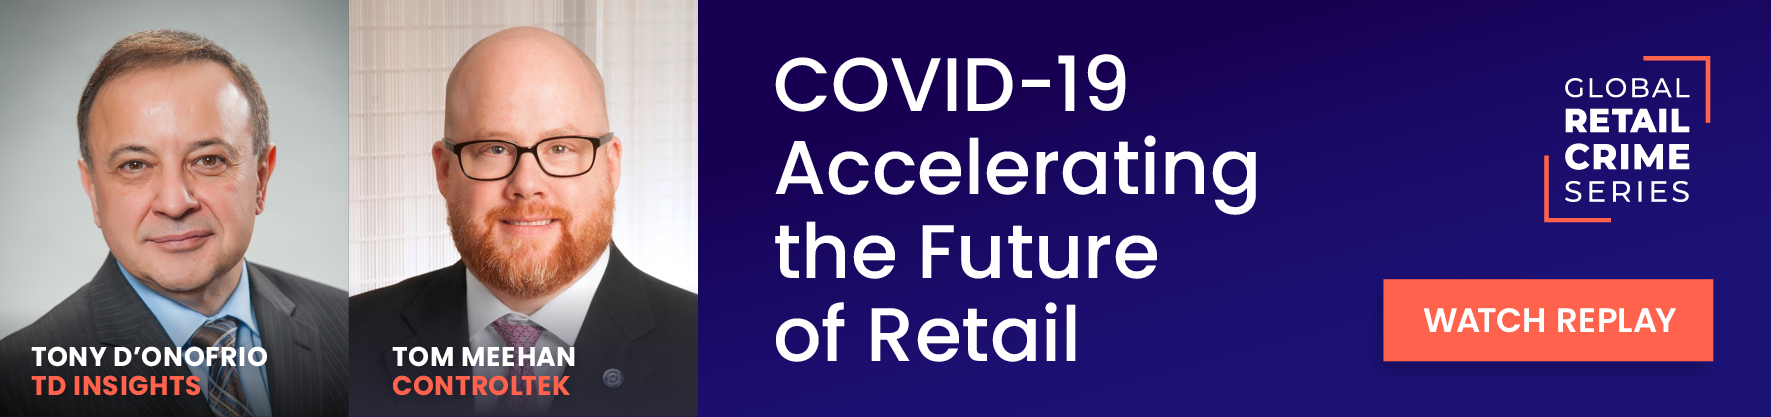 COVID-19 Accelerating the Future of Retail